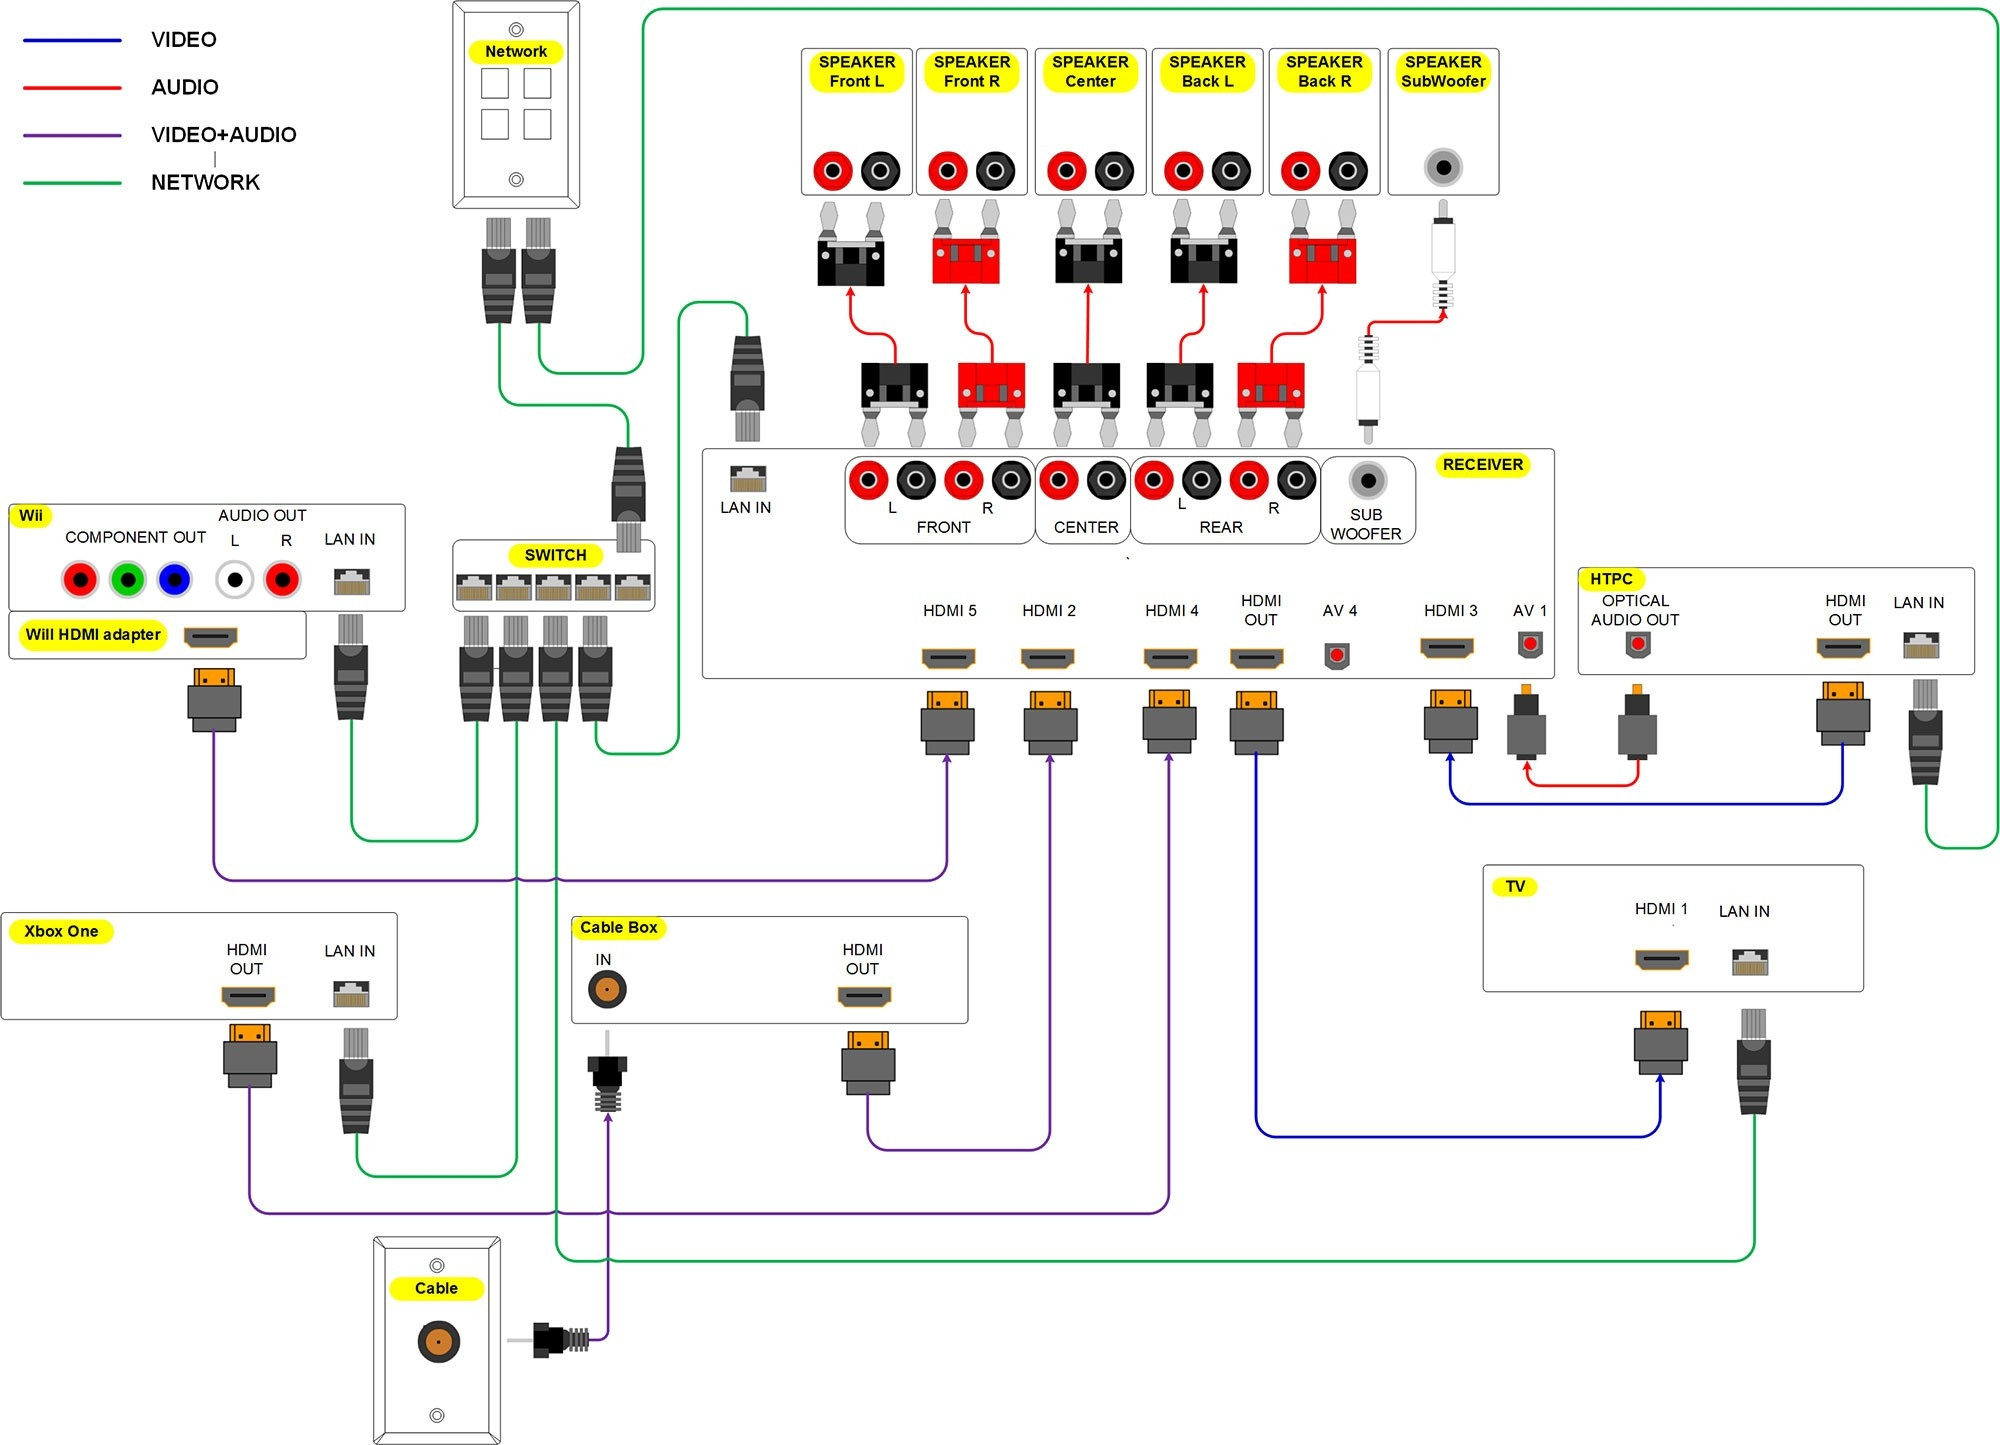 home theater subwoofer wiring diagram Collection-Home theater Systems Wiring Diagrams Download Subwoofer Cable Wiring Diagram New Home Theater Unbelievable 18 1-i